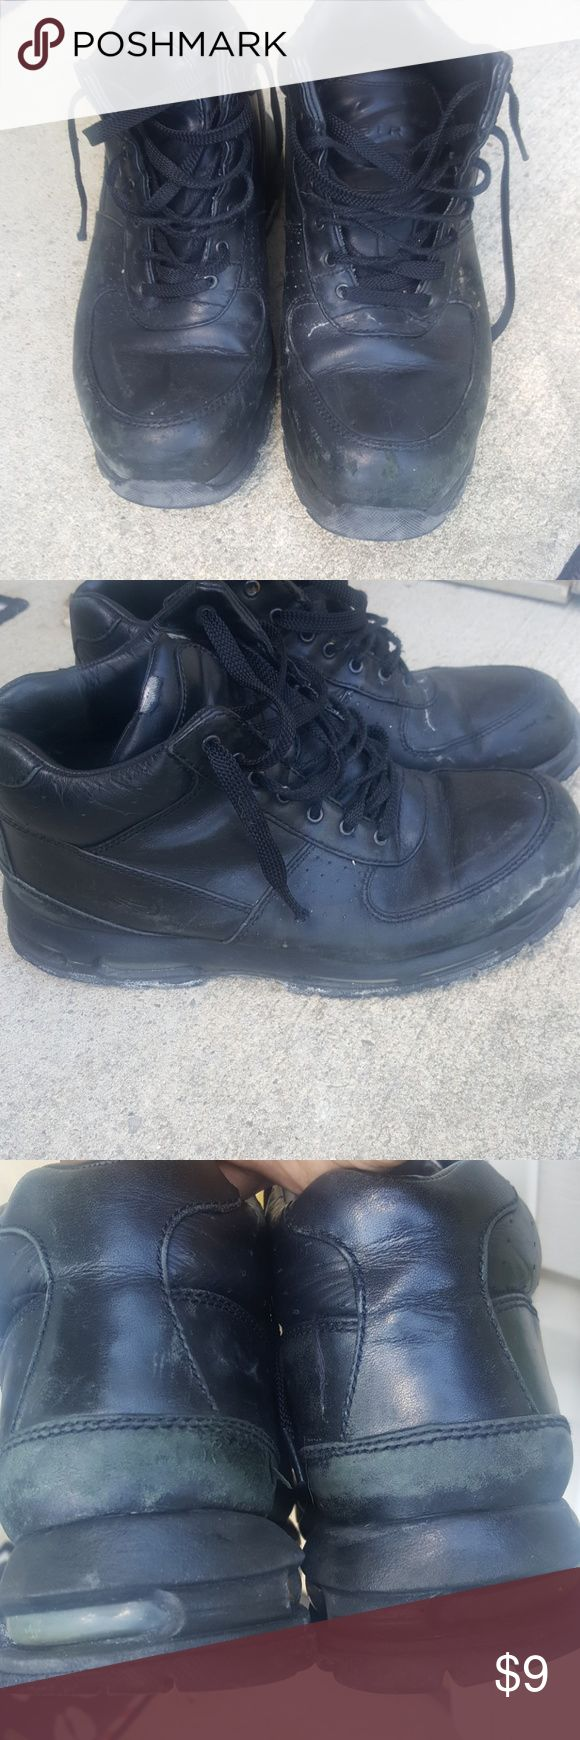 Mens ACG Nike Boots Mens Nike ACG boots. Worn but still durable. Nike Shoes Boots